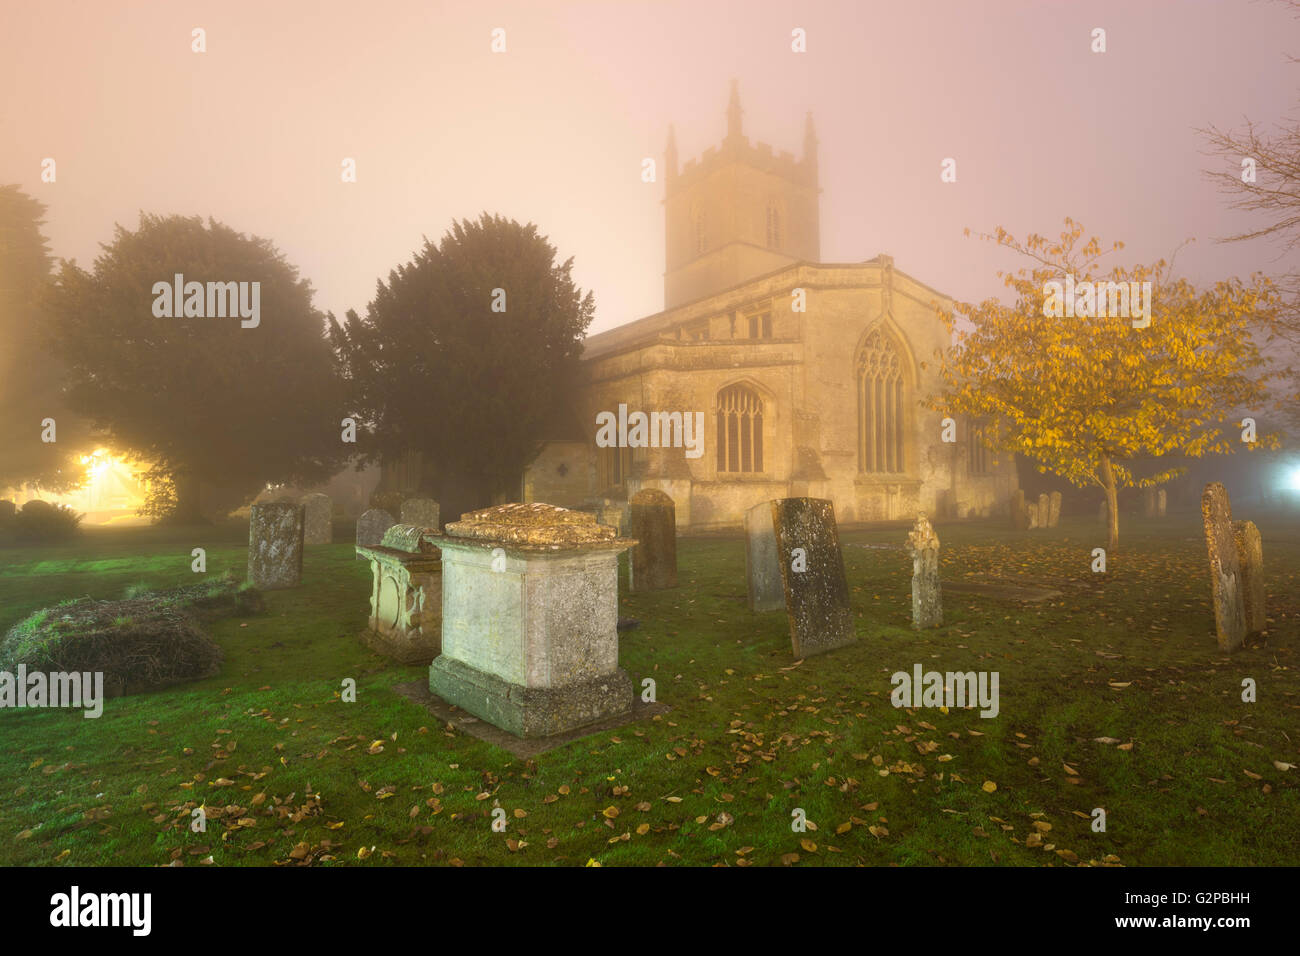 Saint Edward's Church in fog, Stow-on-the-Wold, Cotswolds, Gloucestershire, England, United Kingdom, Europe Stock Photo